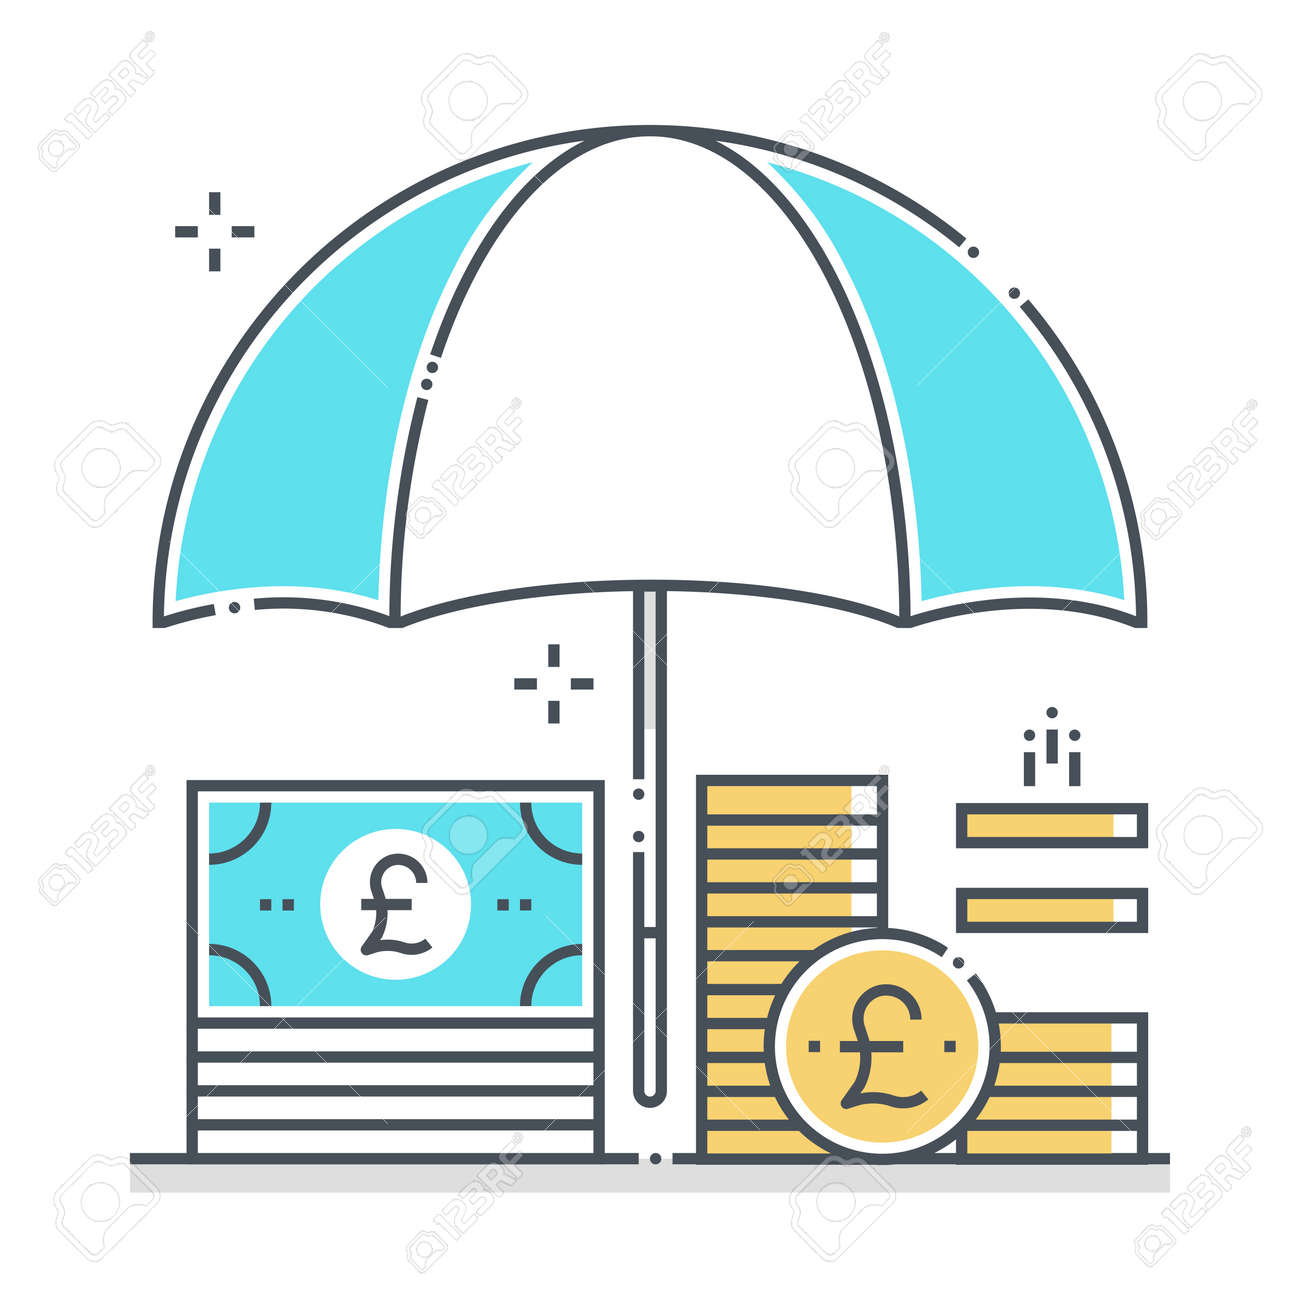 Income protection related color line vector icon, illustration. The icon is about assurance, umbrella, income, bank, account, money, coin. The composition is infinitely scalable. - 163696002